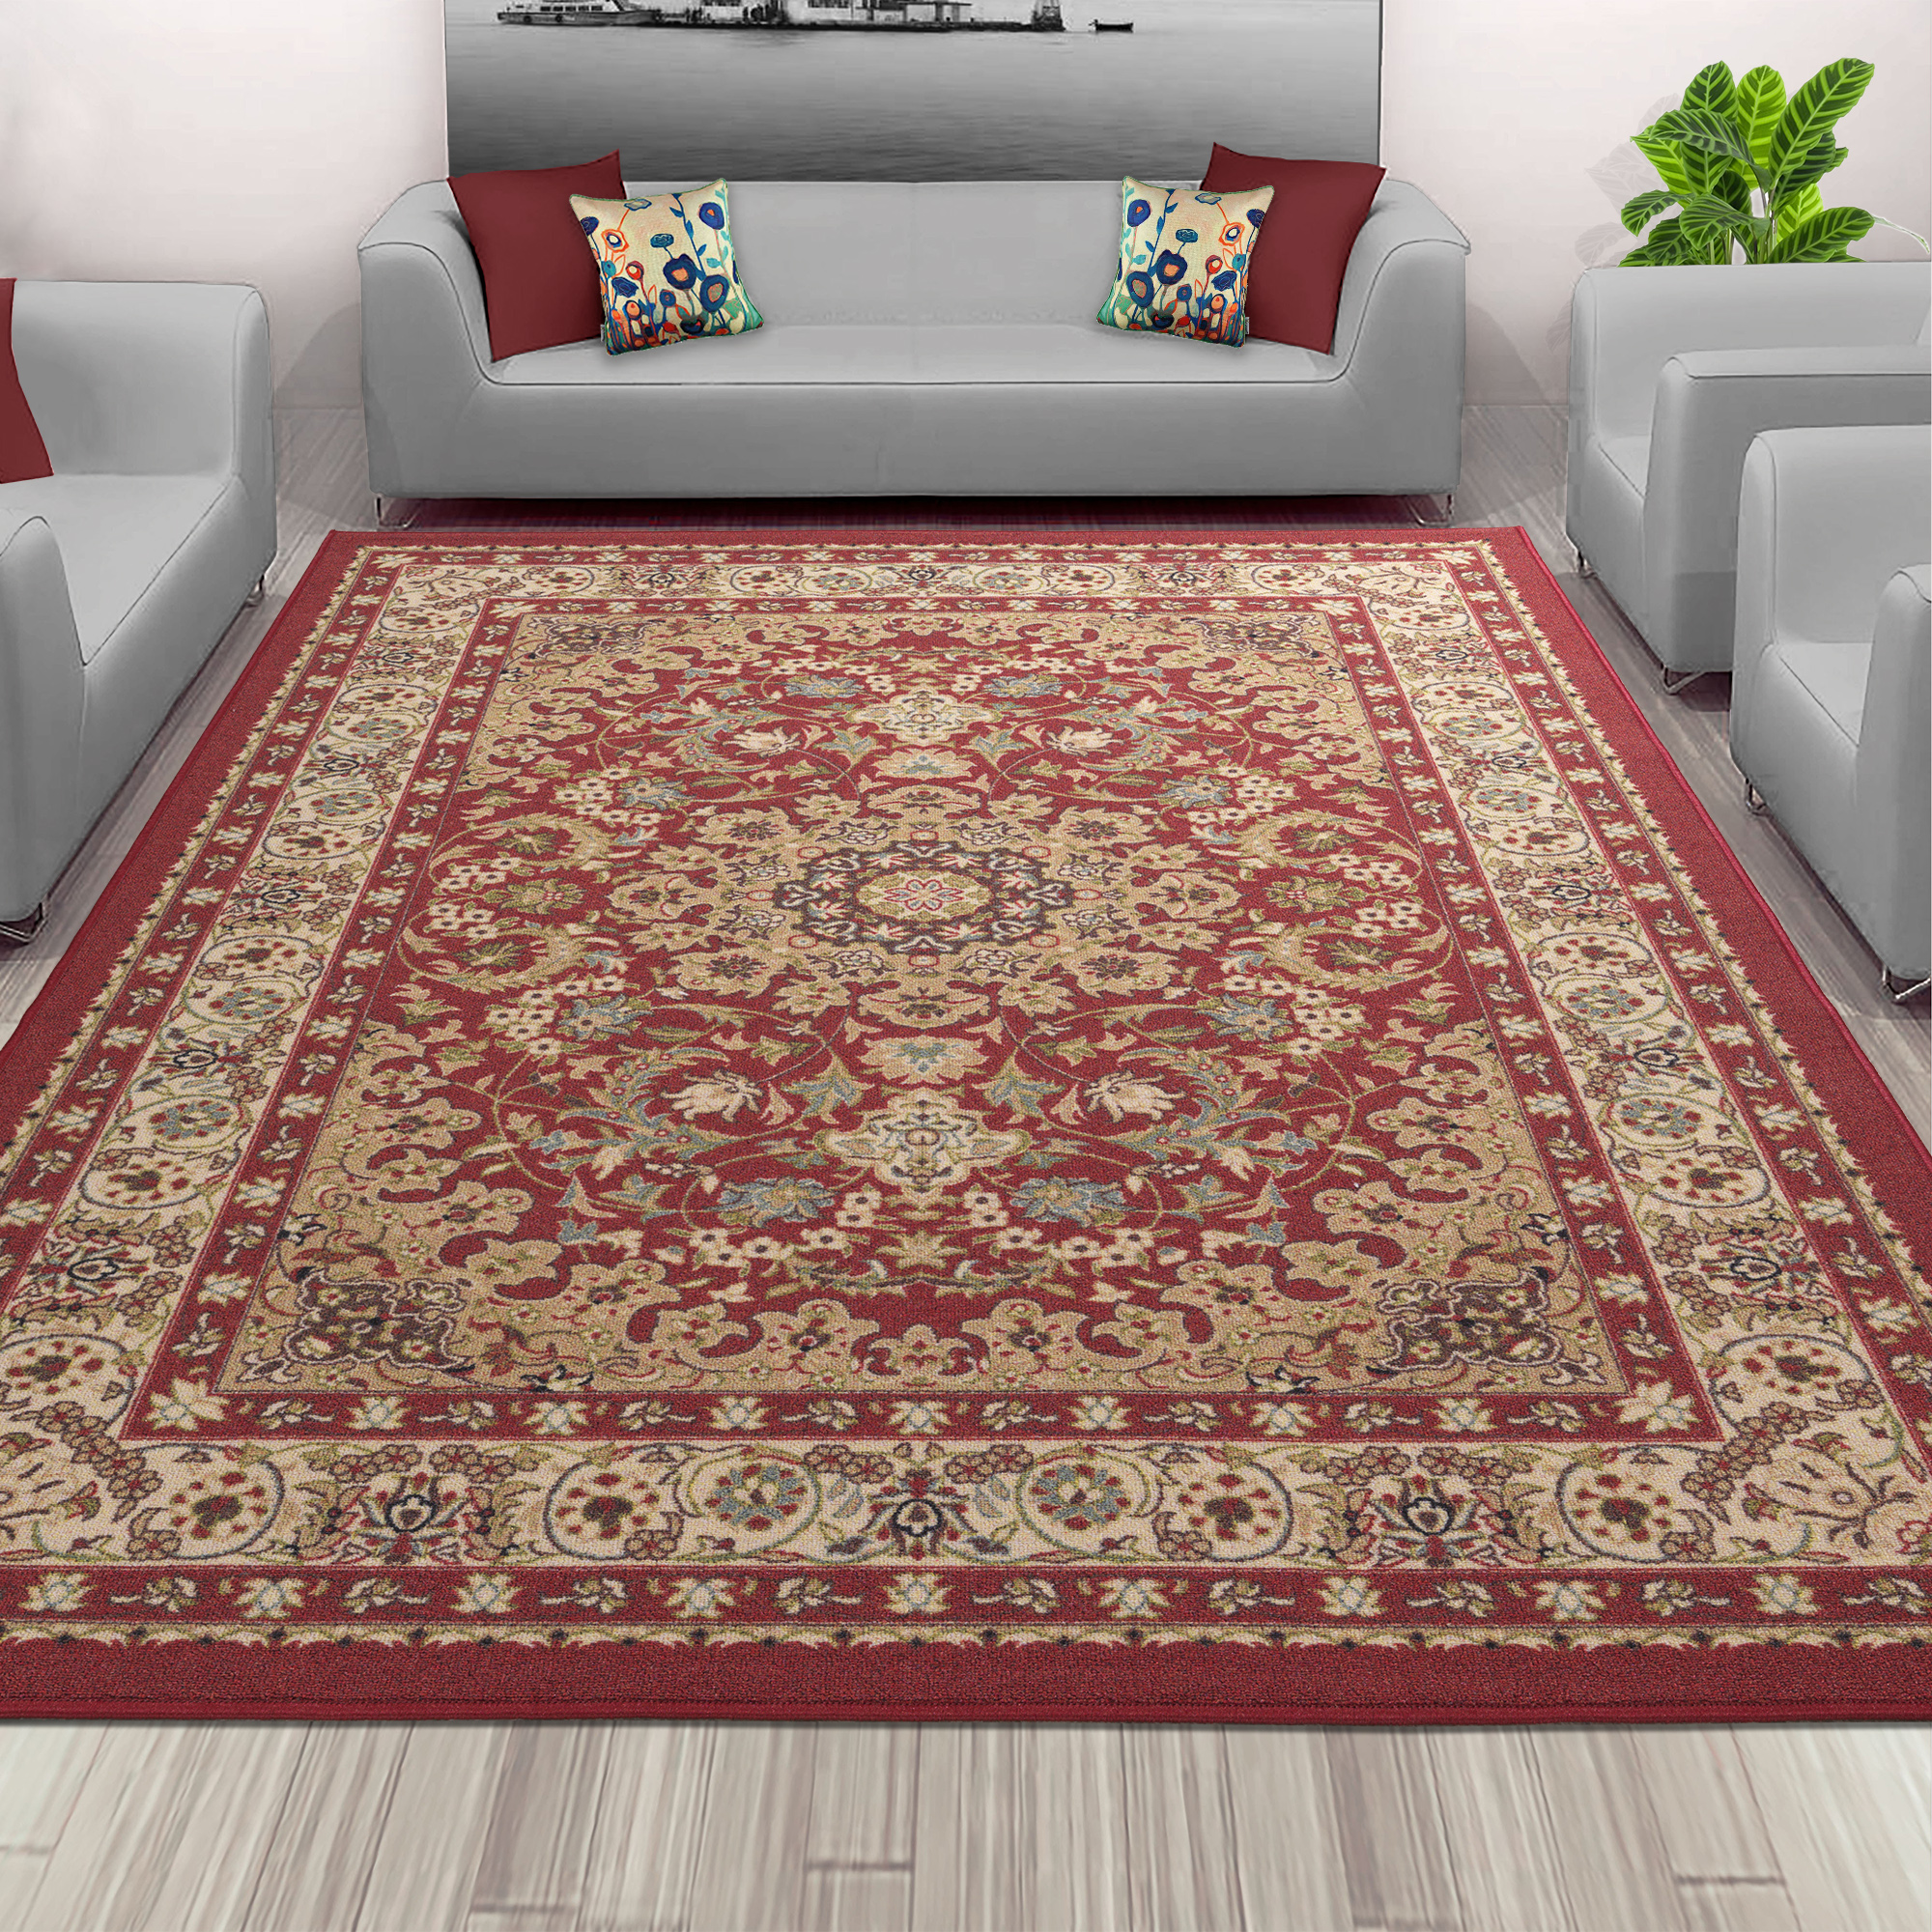 Sweet Home Stores Sweet Home Collection Medallion Design Indoor & Kitchen Area or Runner Rug